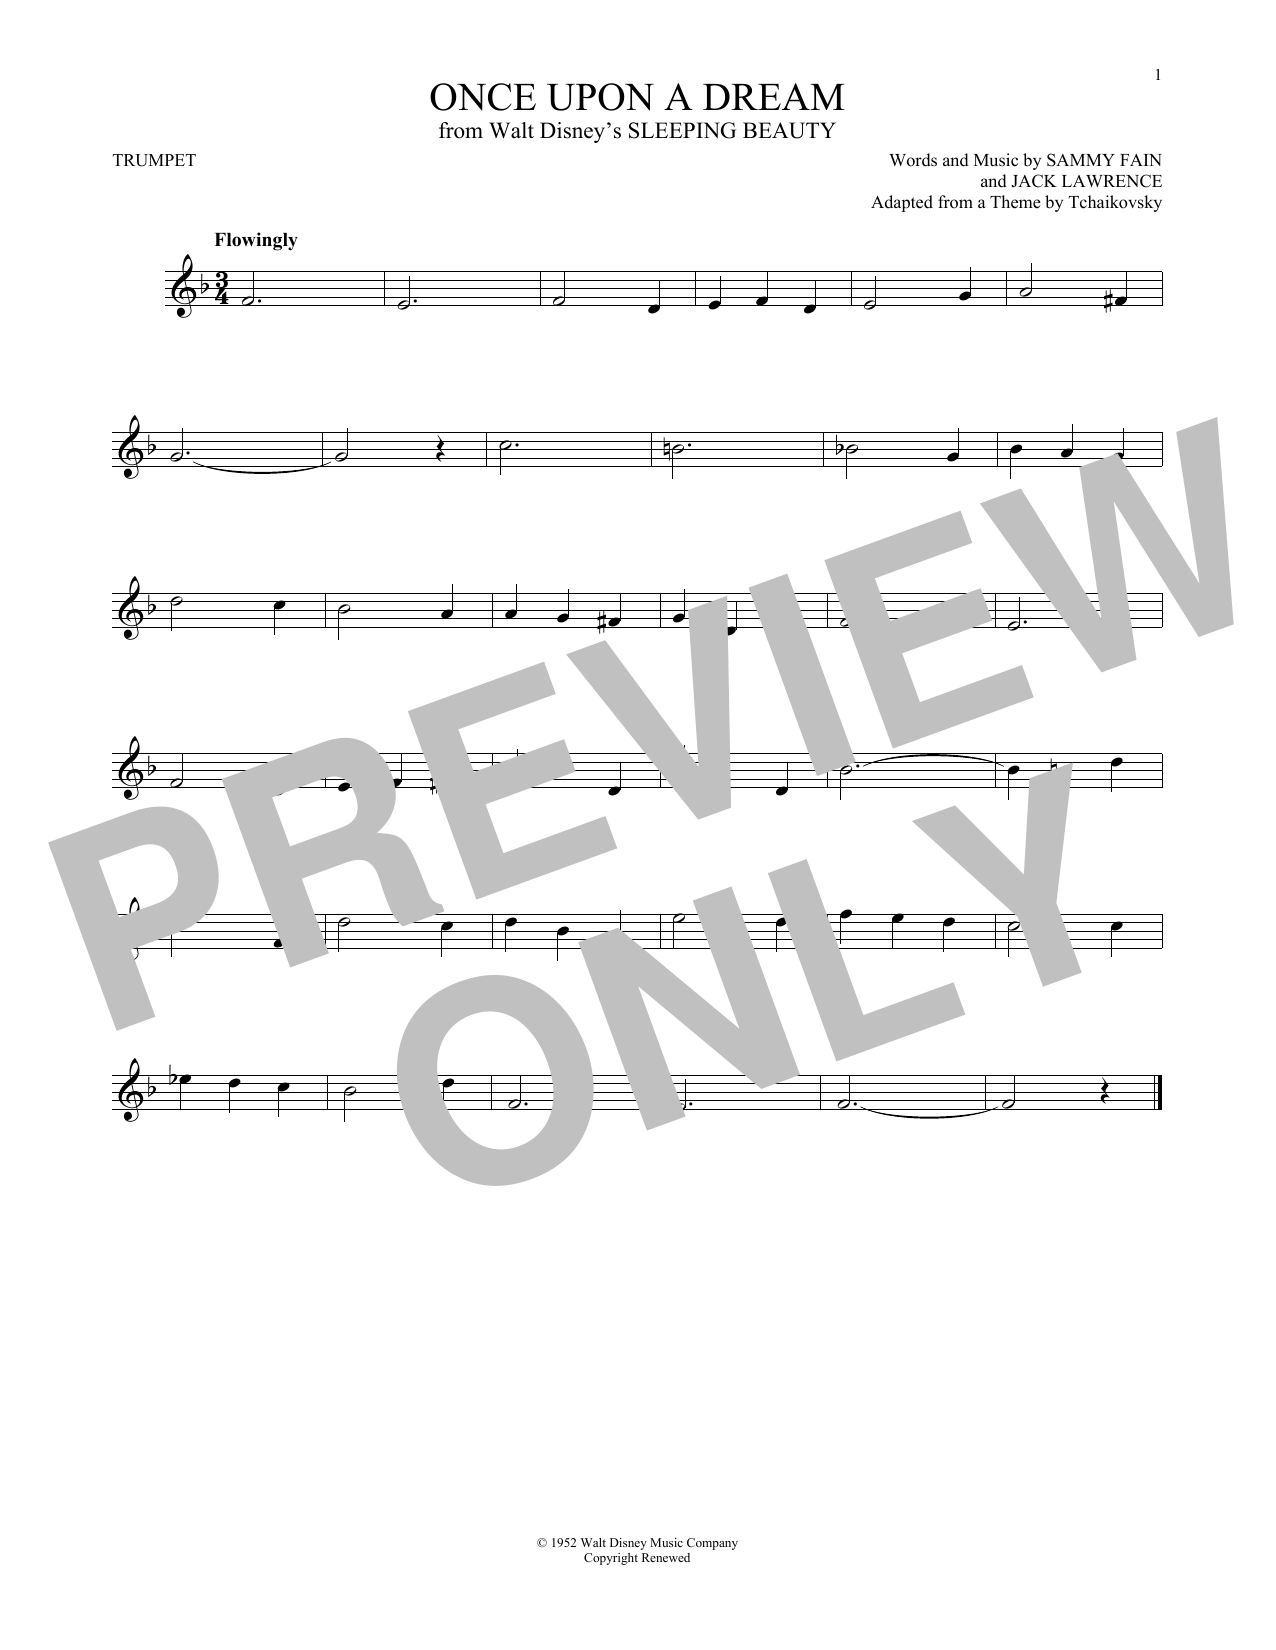 Sammy Fain 'Once Upon A Dream' Sheet Music Notes, Chords | Download  Printable Trumpet - SKU: 178168